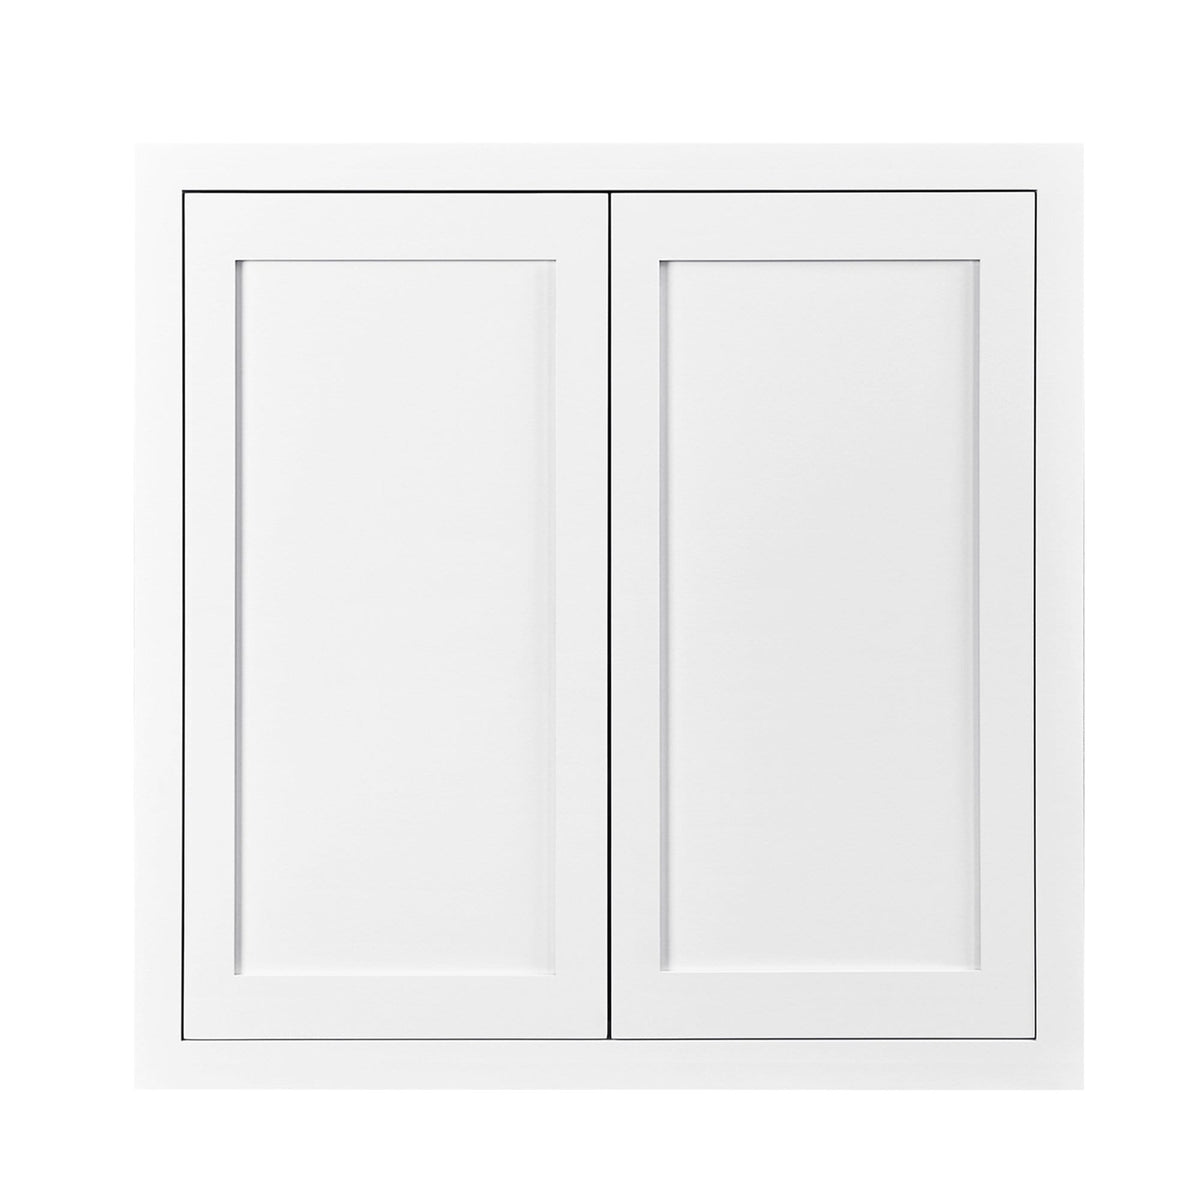 "39"" Tall Wall Cabinet 39"" Tall Snow White Inset Shaker Wall Cabinet - Double Door 24"", 27"", 30"", 33"" & 36"" Wide D1W303914 Inset Kitchen Cabinets"